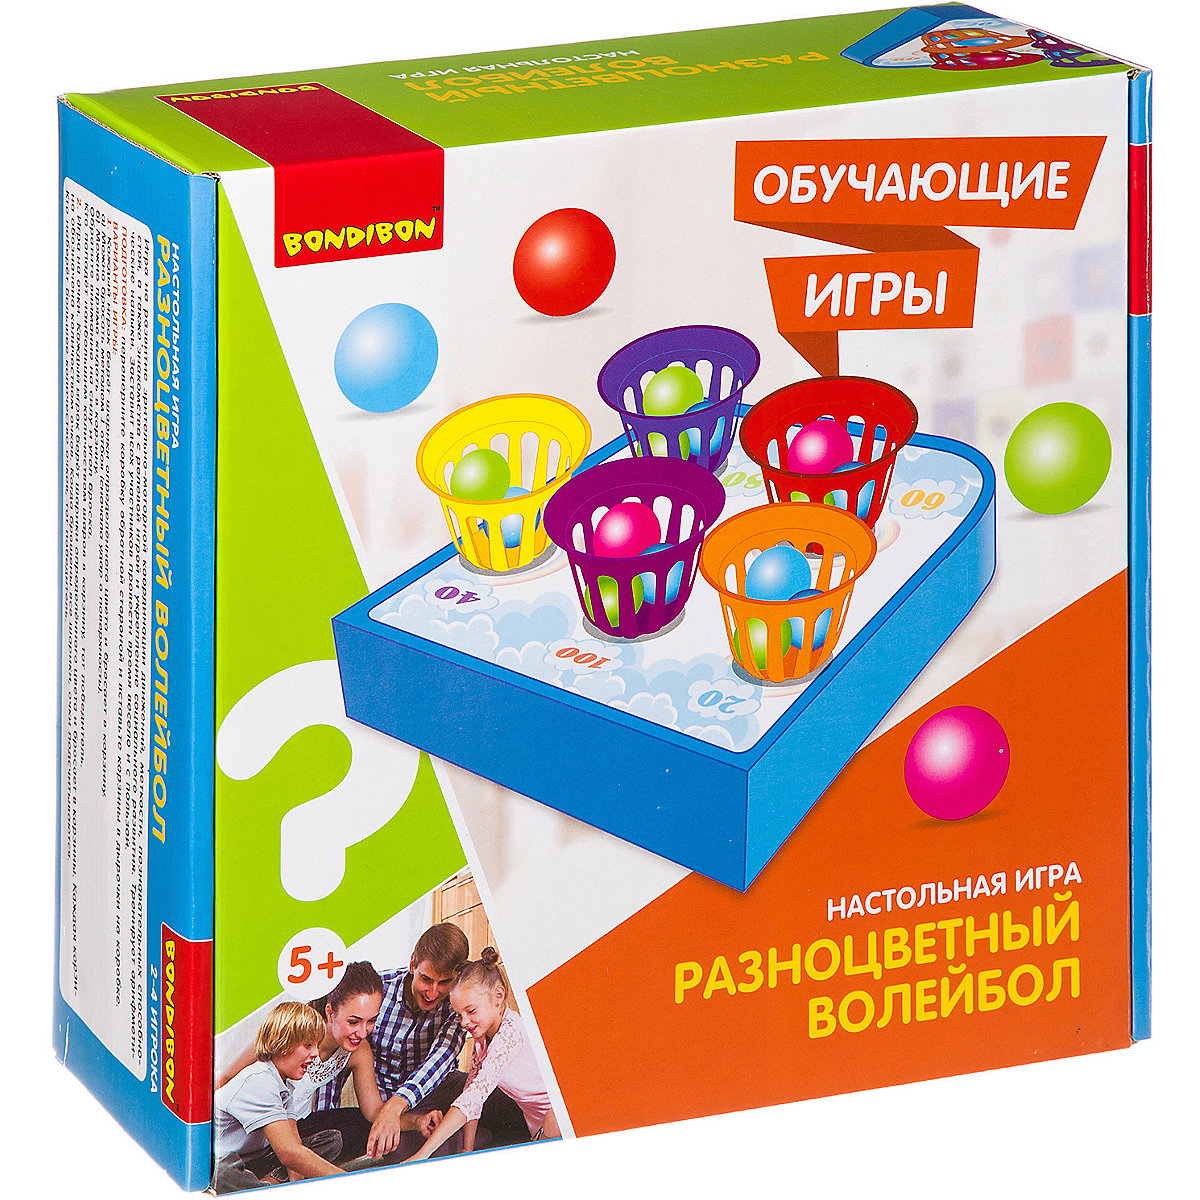 BONDIBON Party Games 10367348 education toys logic board game toy bondibon party games 10367336 education toys logic board game toy